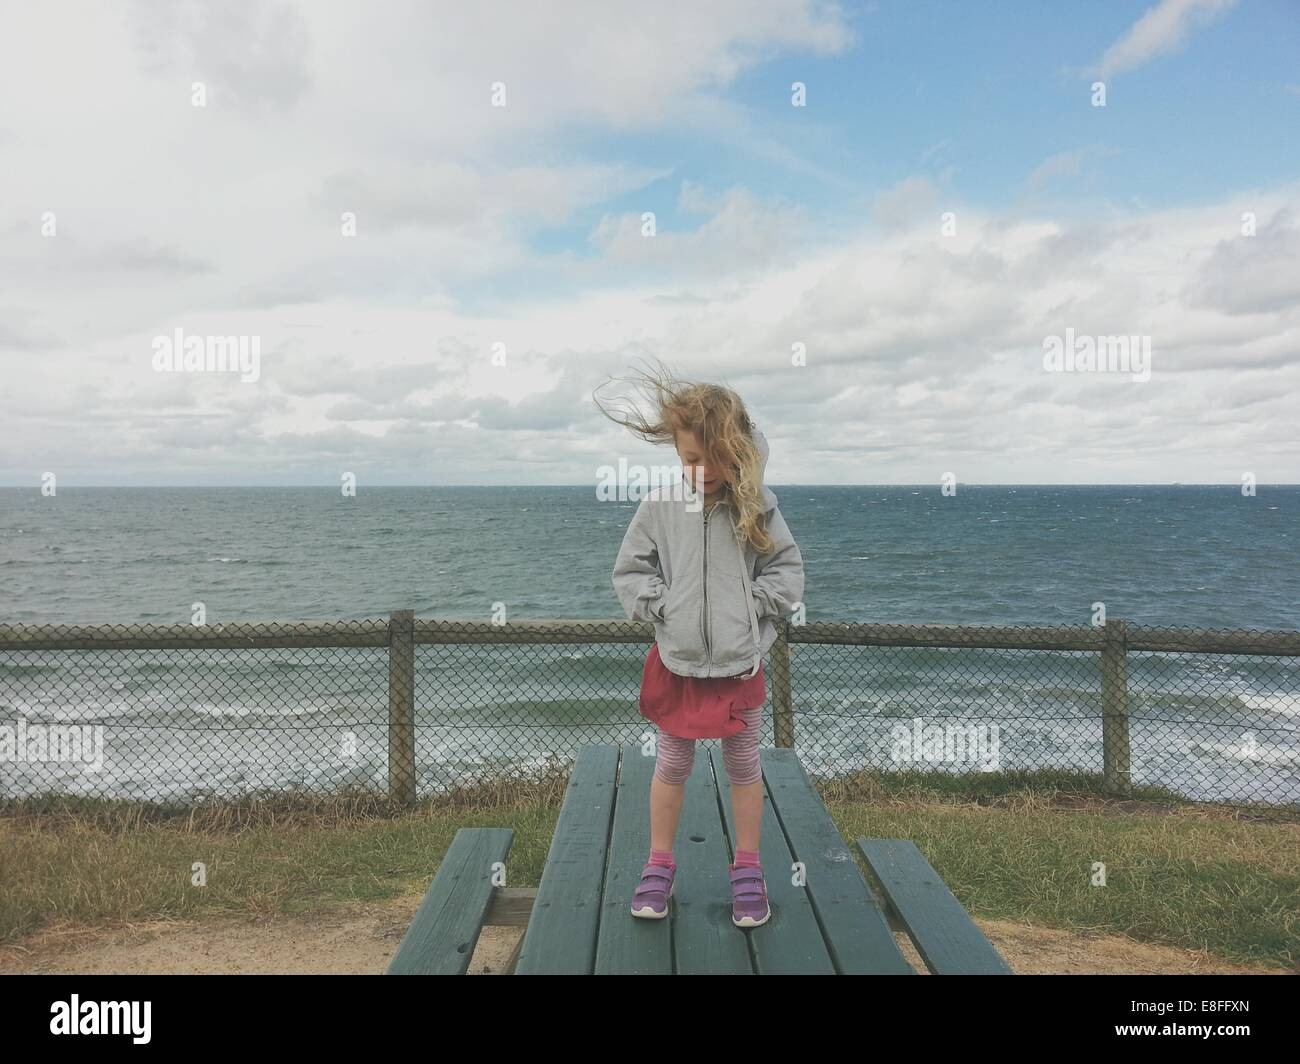 Girl standing on a picnic table by the sea - Stock Image